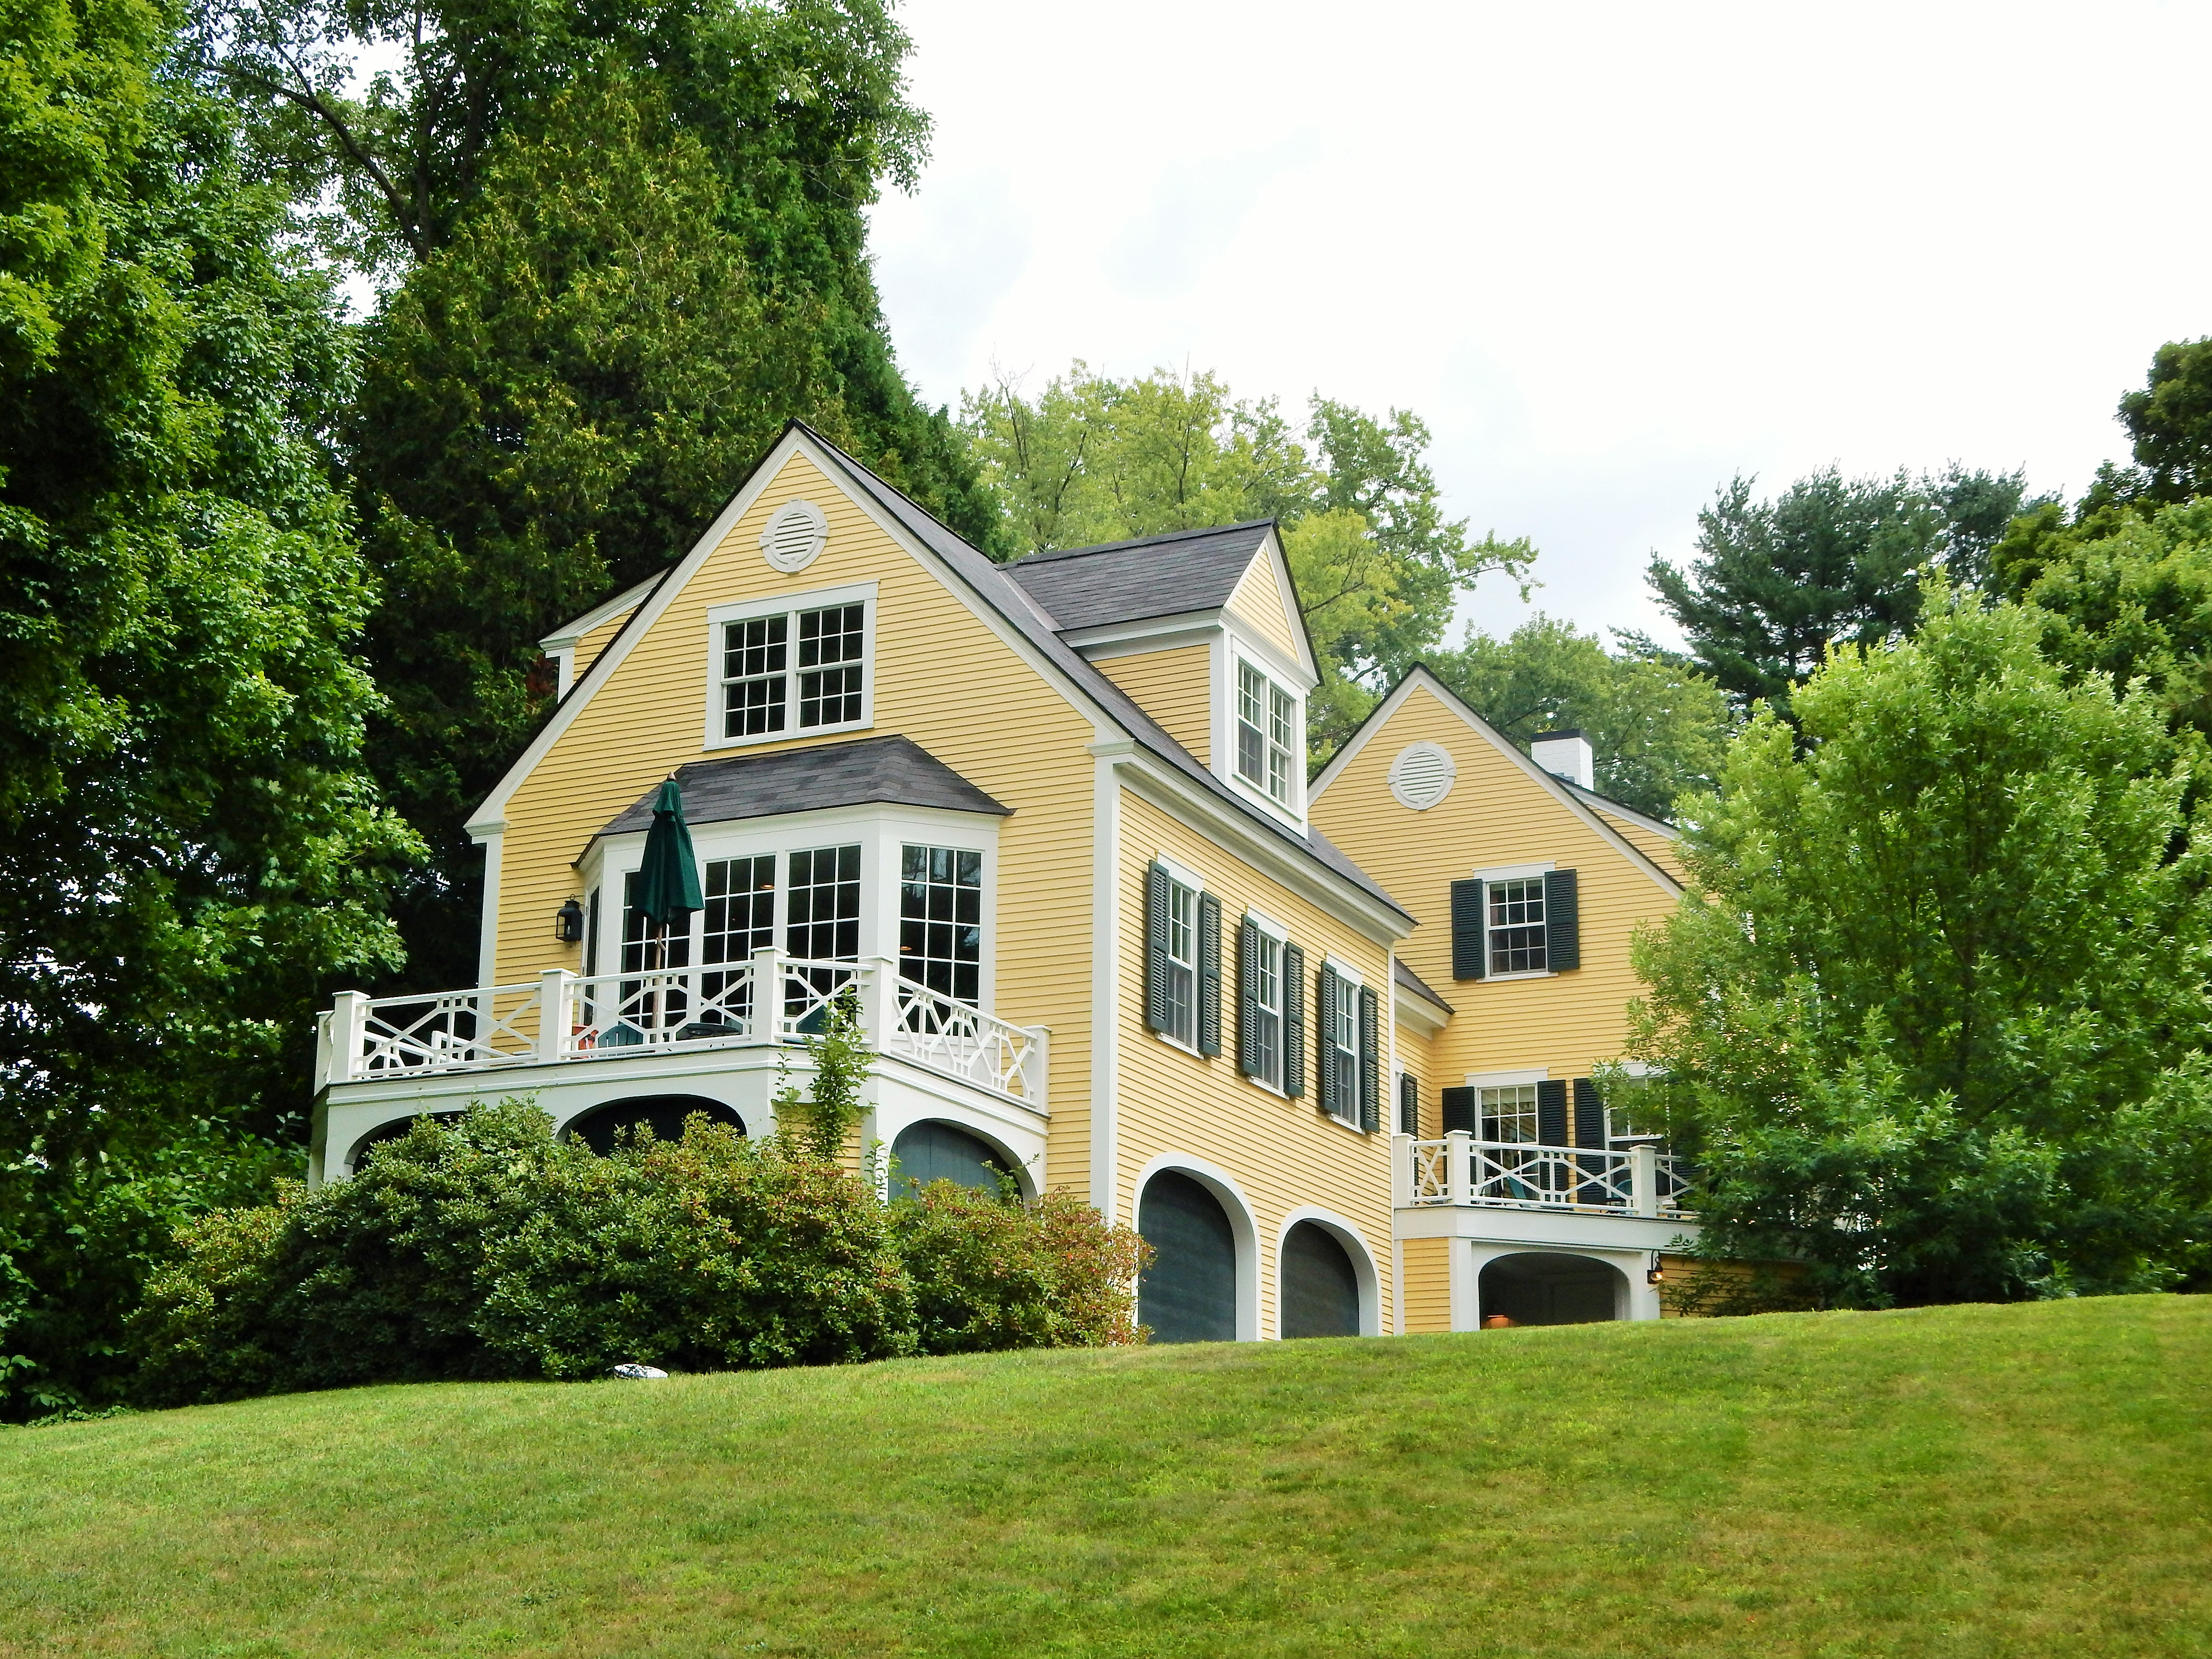 Single Family Home for Sale at 14 Rope Ferry Road, Hanover 14 Rope Ferry Rd Hanover, New Hampshire, 03755 United States